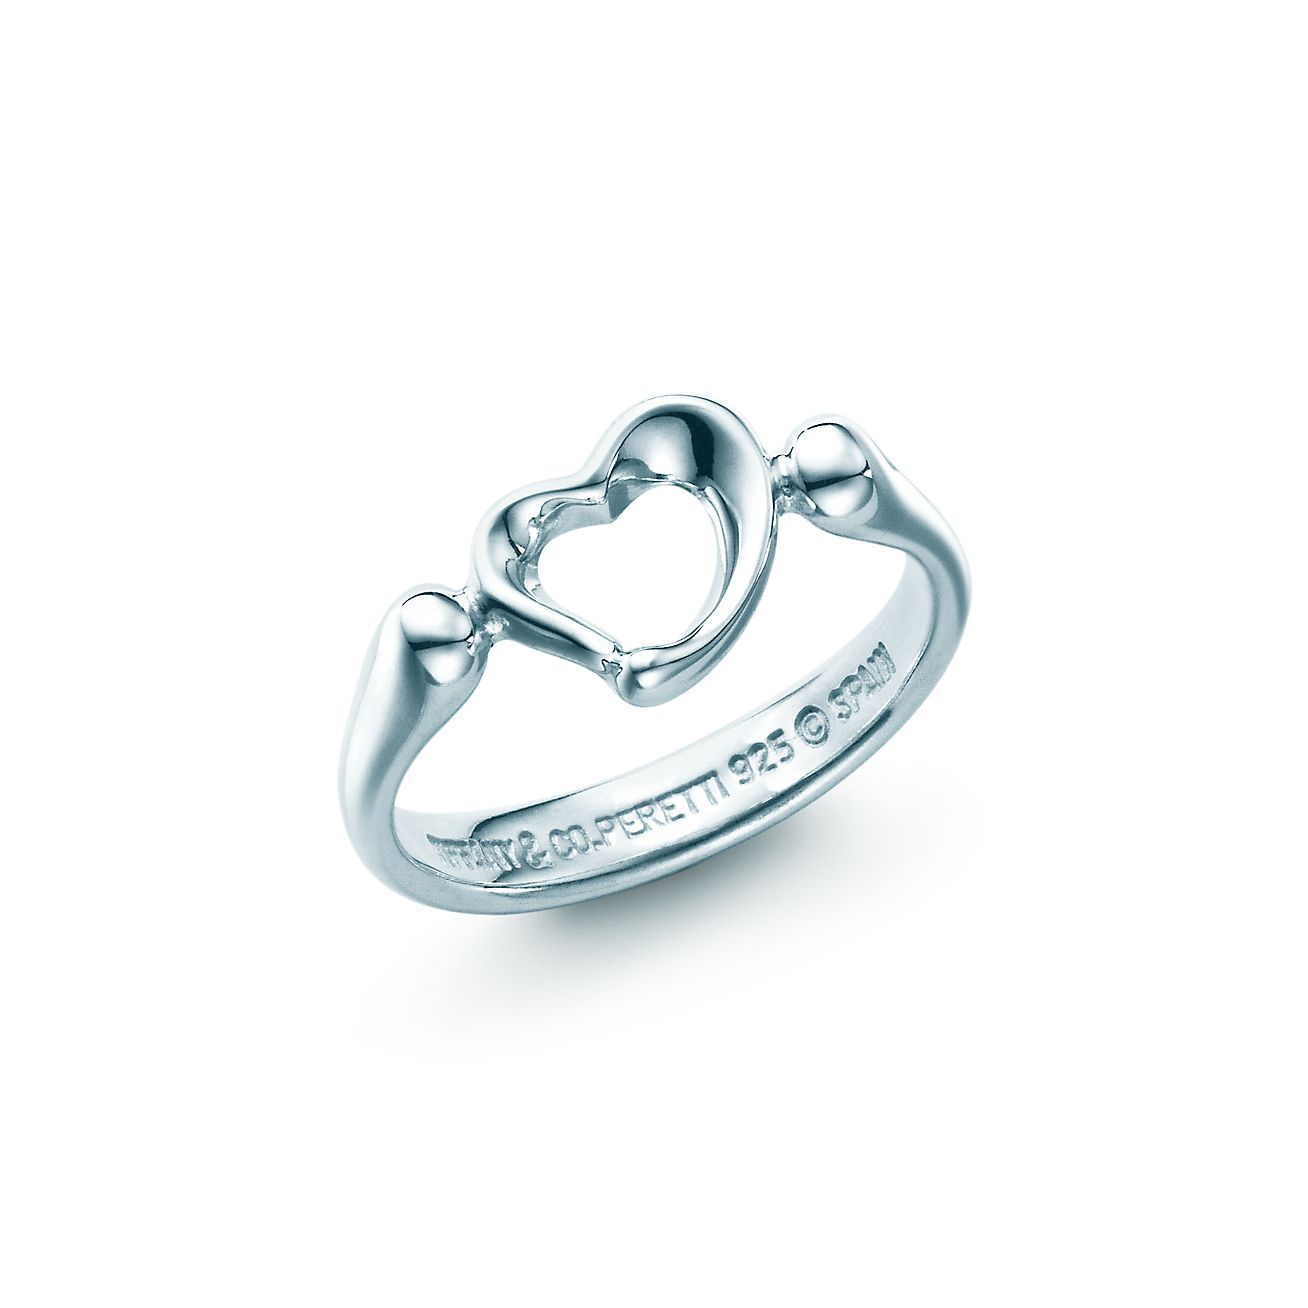 Elsa Peretti Open Heart ring in sterling silver, small - Size 7 1/2 Tiffany & Co.